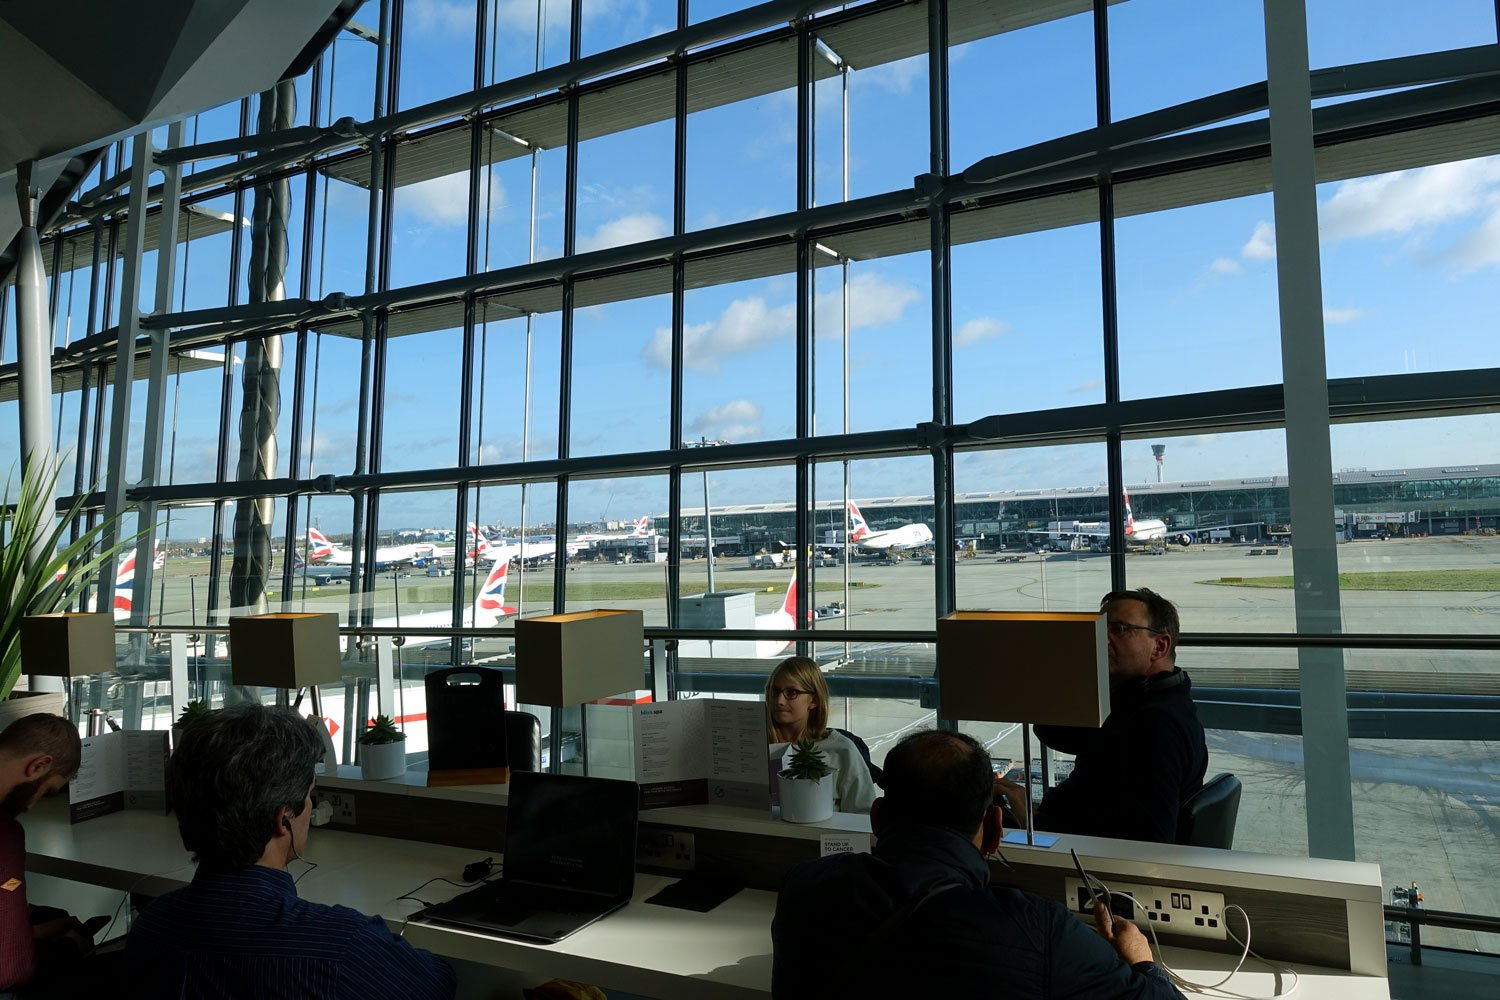 heathrow priority pass lounge - aspire lounge and spa - the view